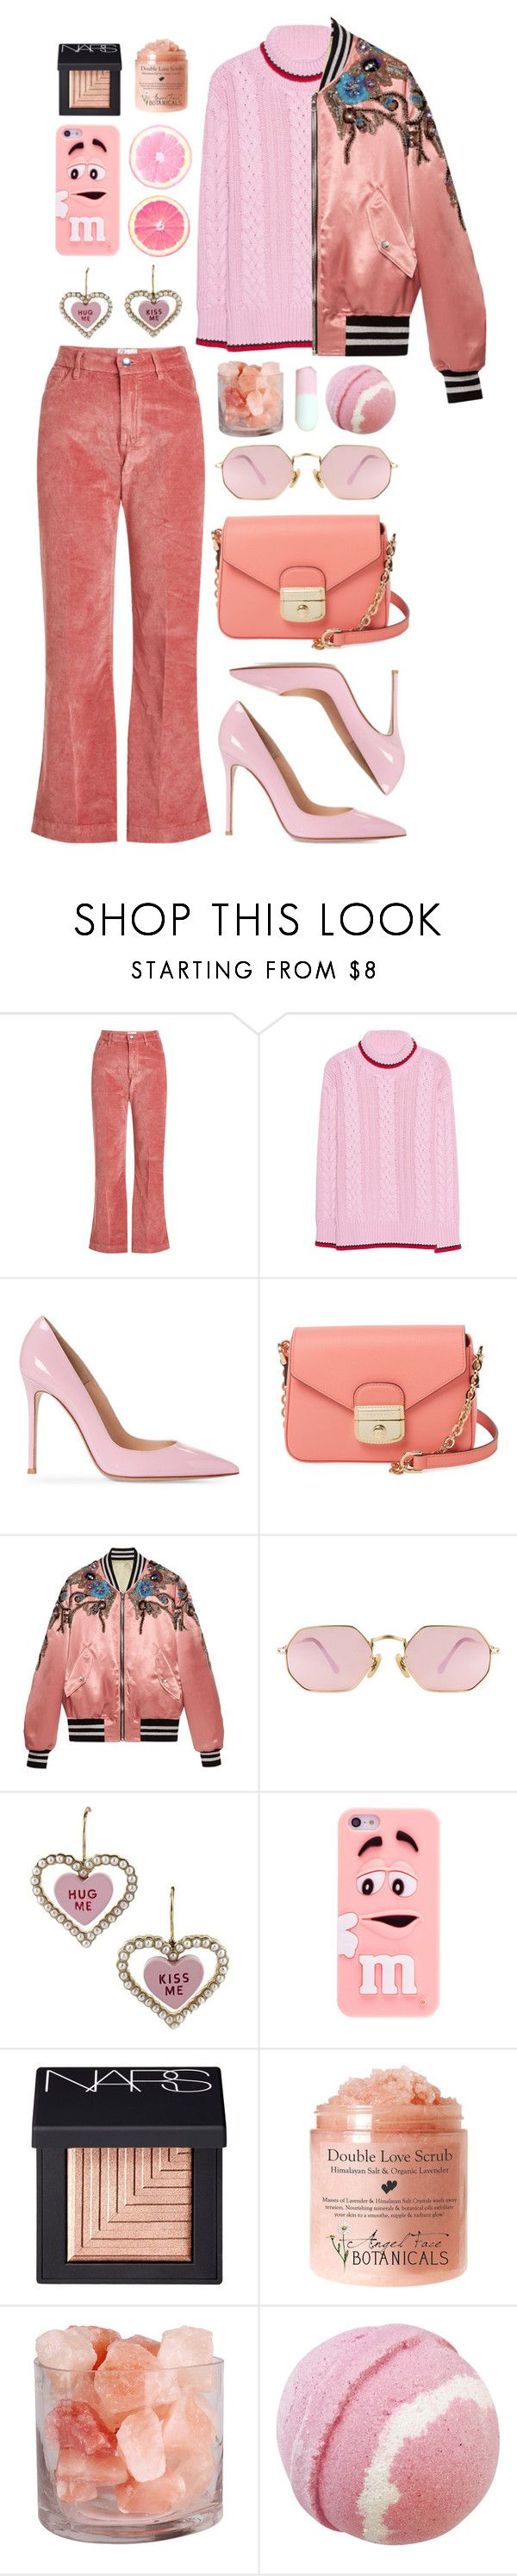 """""""I come alive in the fall time"""" by emmaadv ❤ liked on Polyvore featuring The Seafarer, Longchamp, Gucci, LMNT, Betsey Johnson and NARS Cosmetics"""